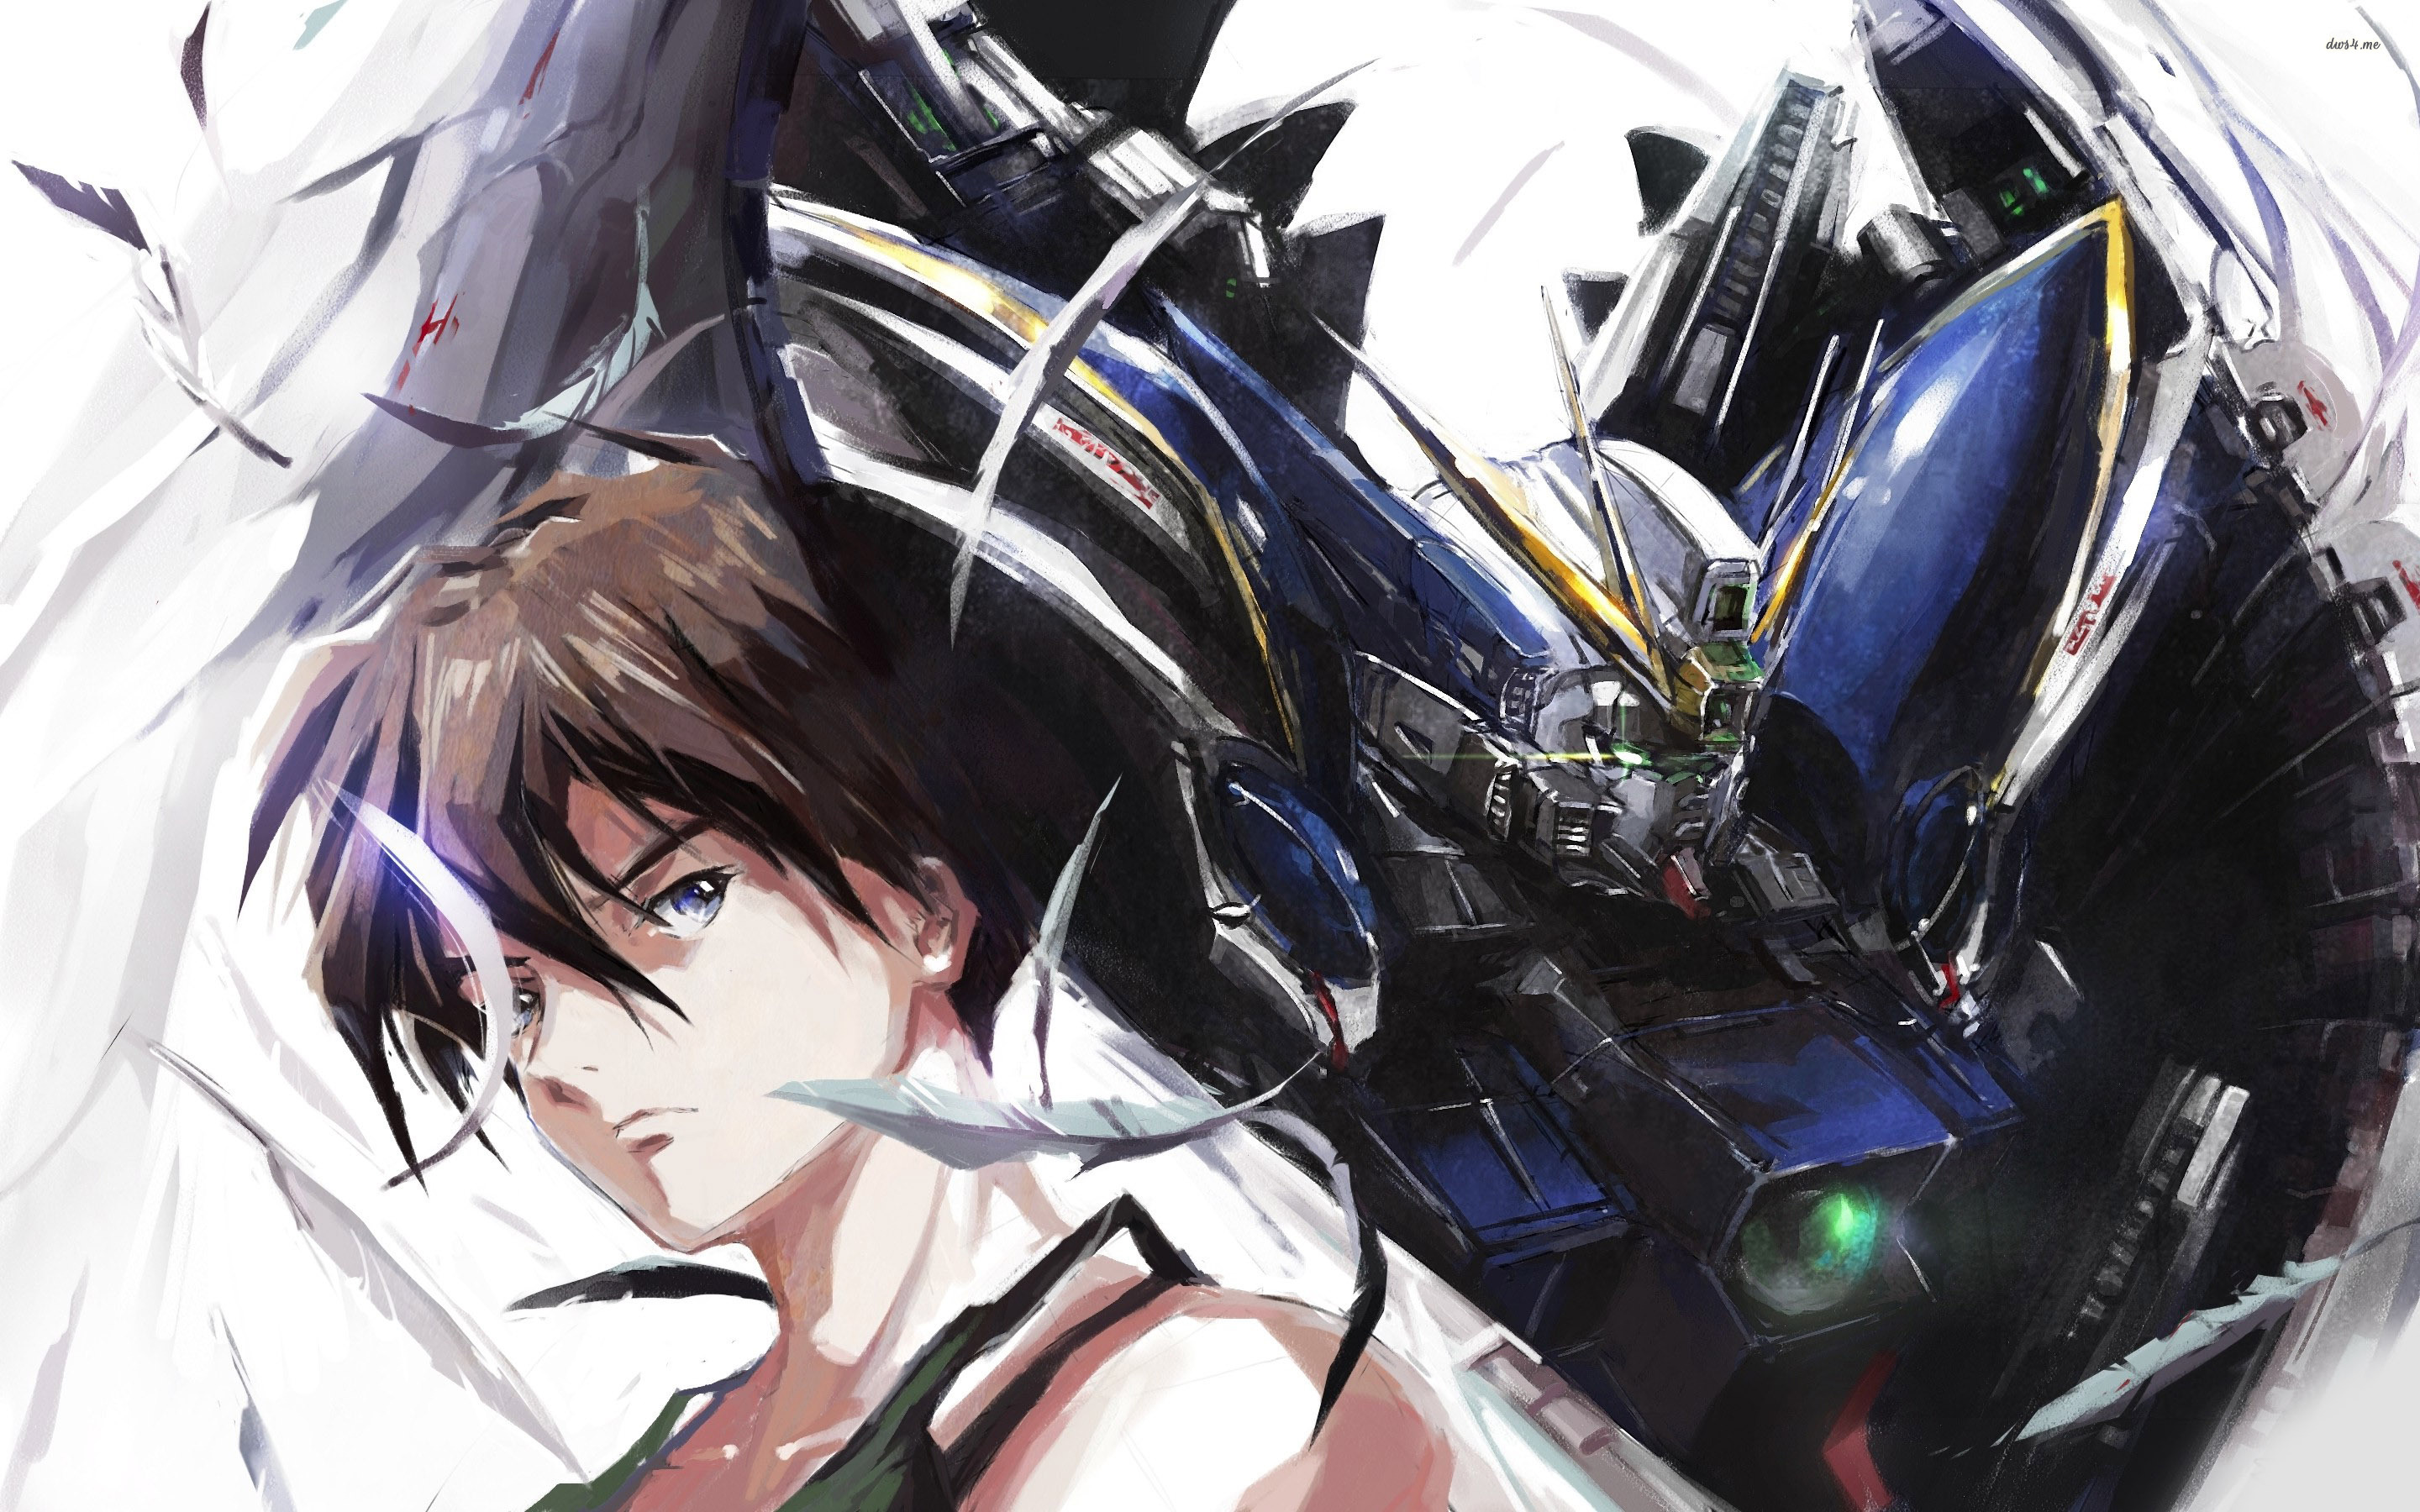 ... Moblie Suit Gundam Wing wallpaper 2880x1800 ...